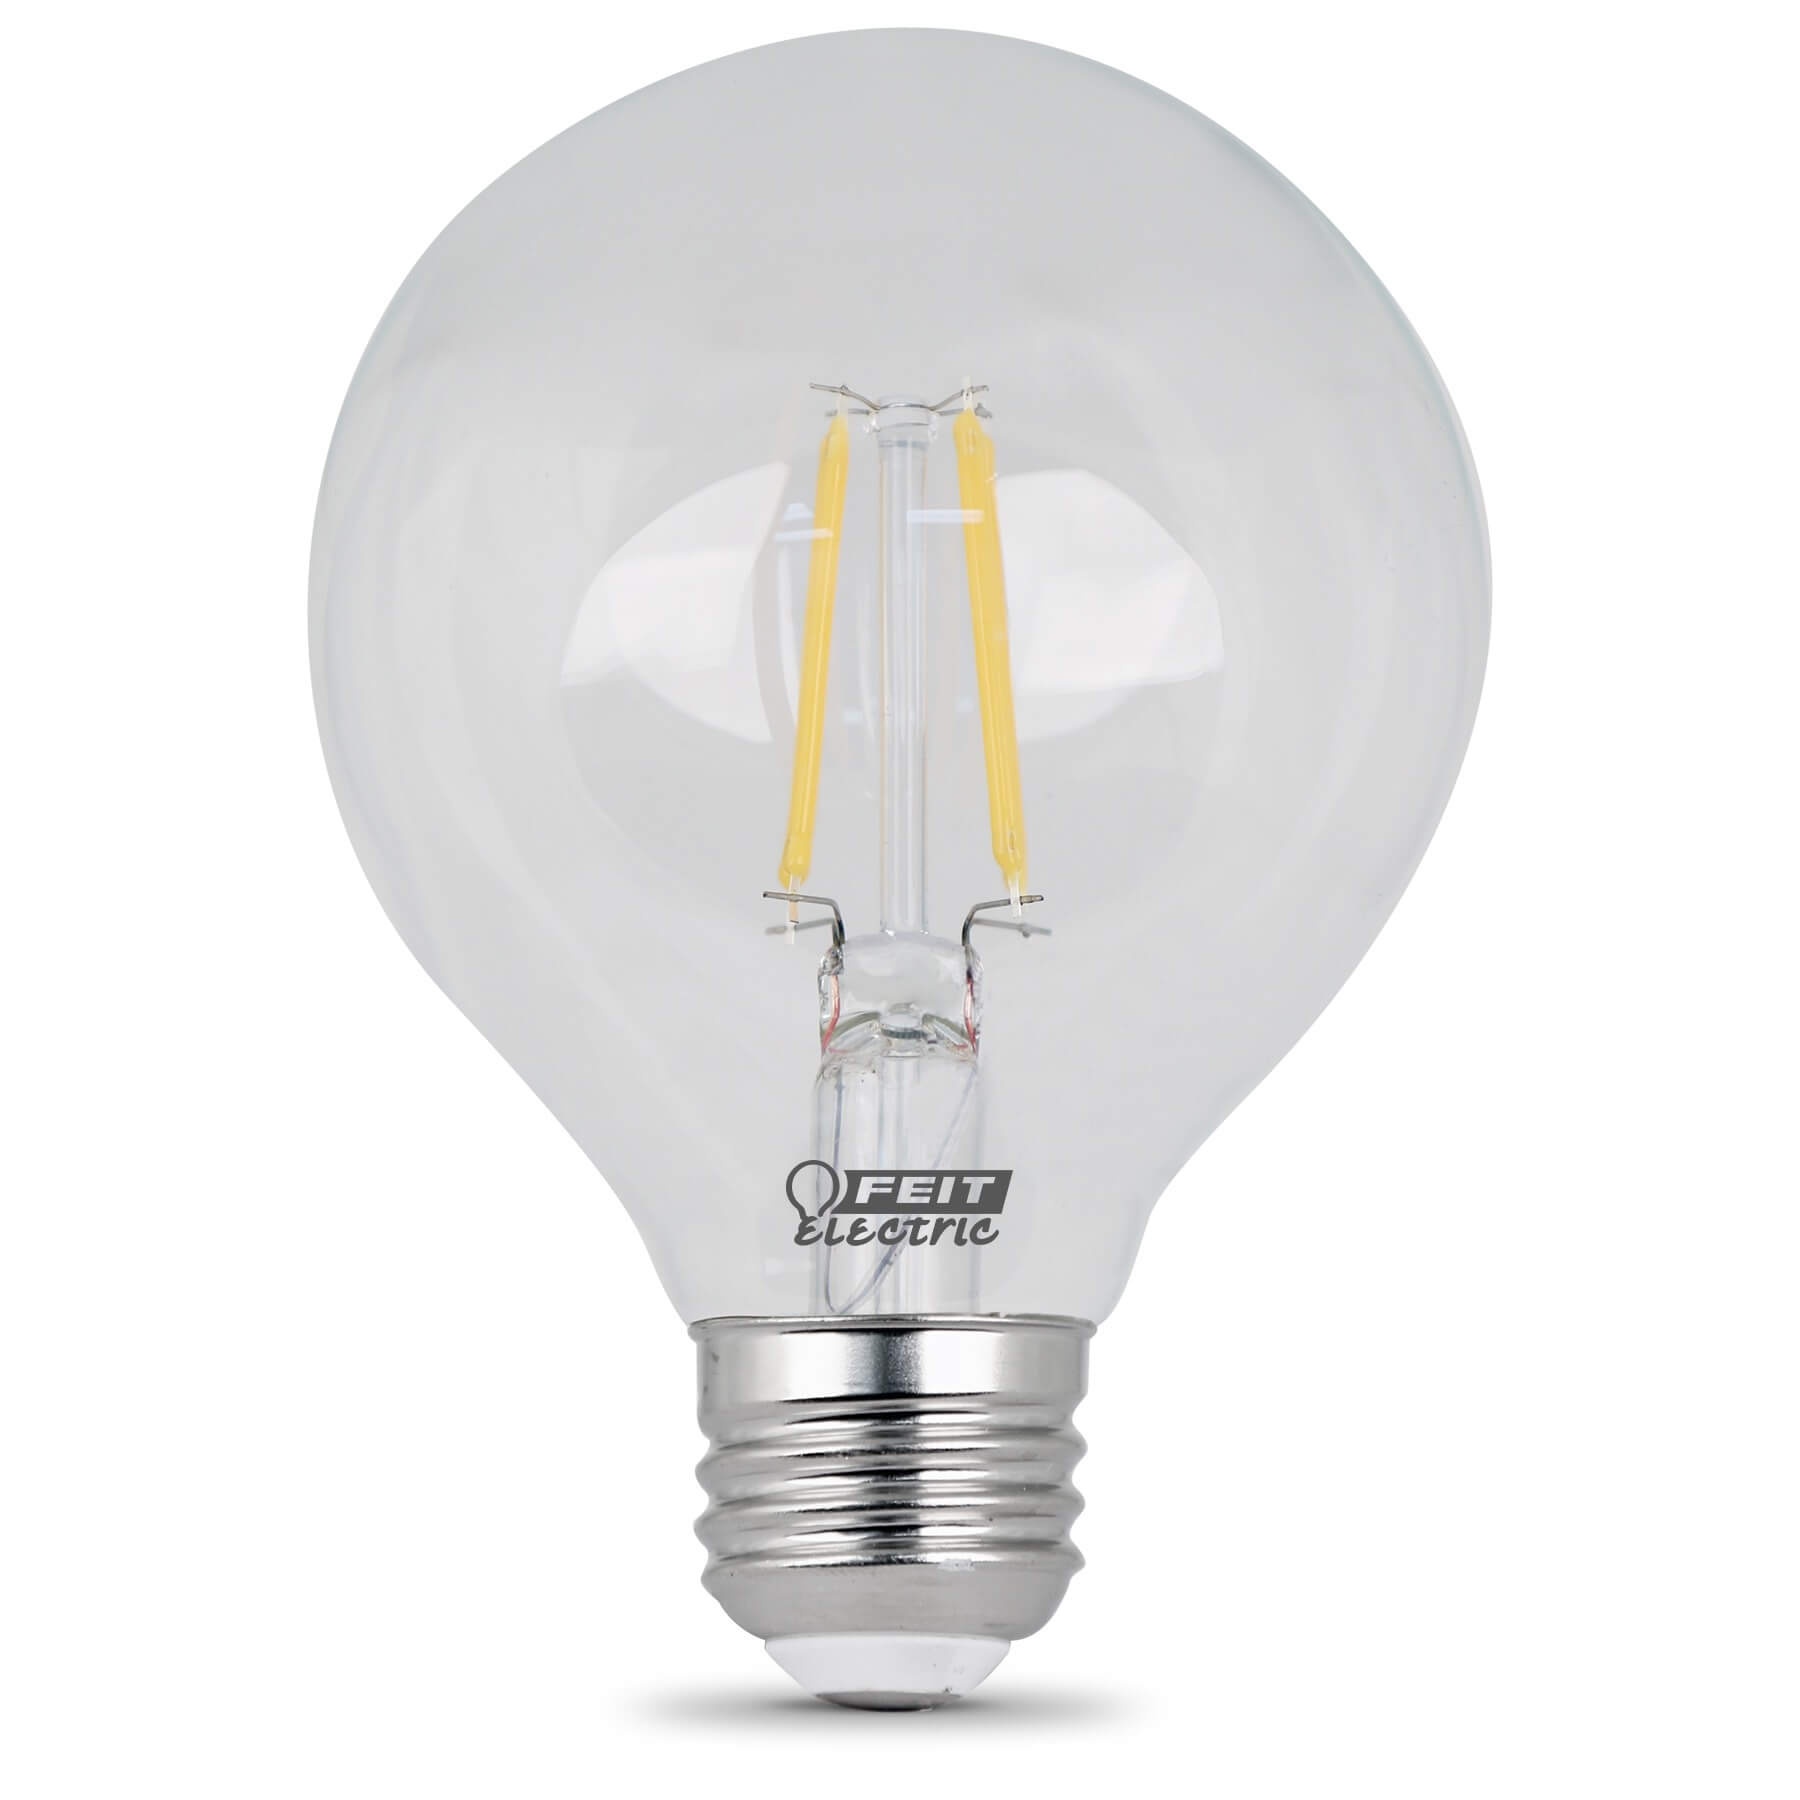 500 Lumen 2700K Dimmable LED - Feit Electric